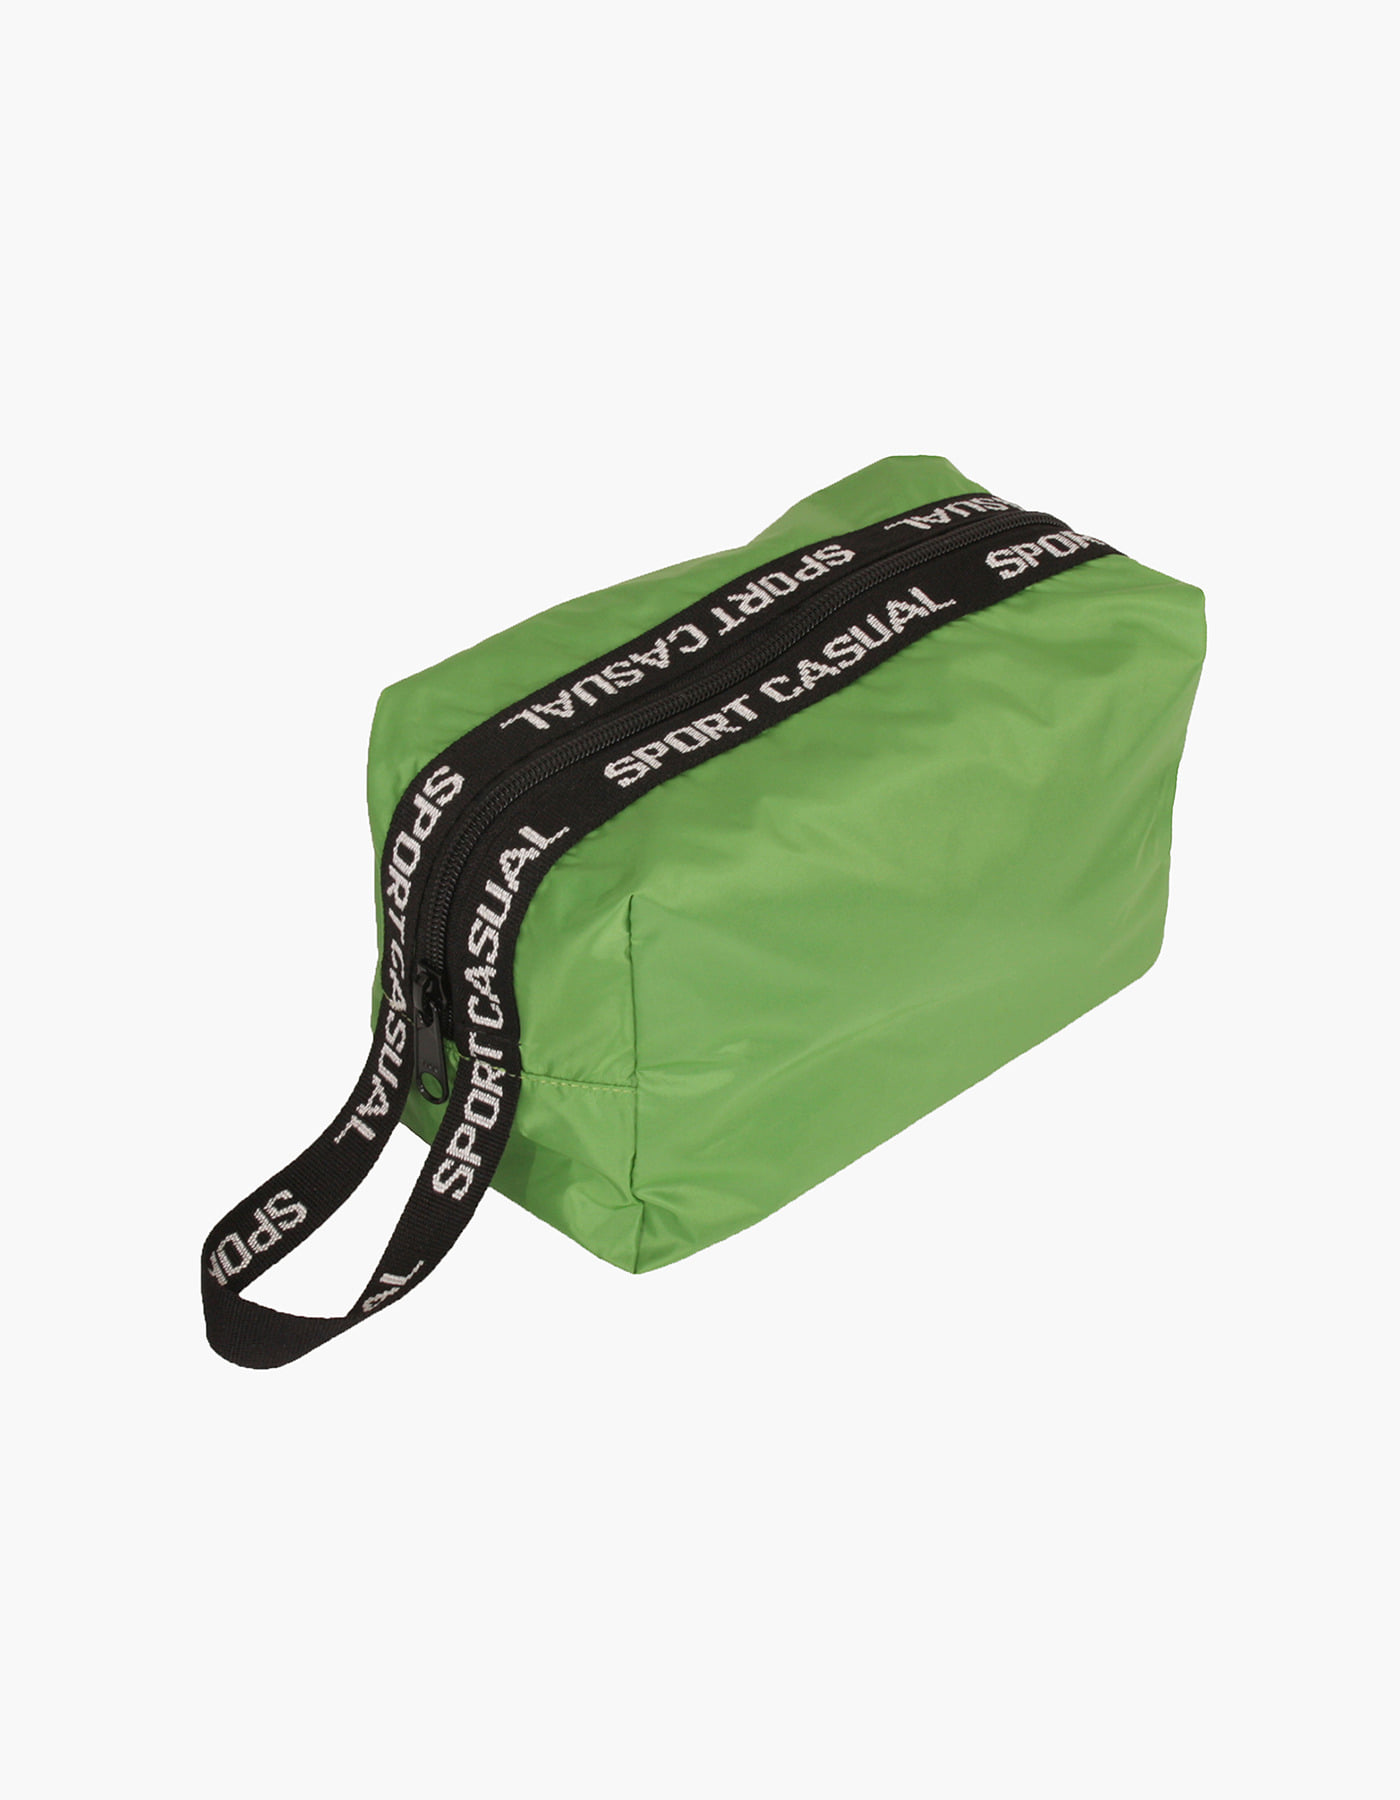 SPORTS POUCH / GREEN